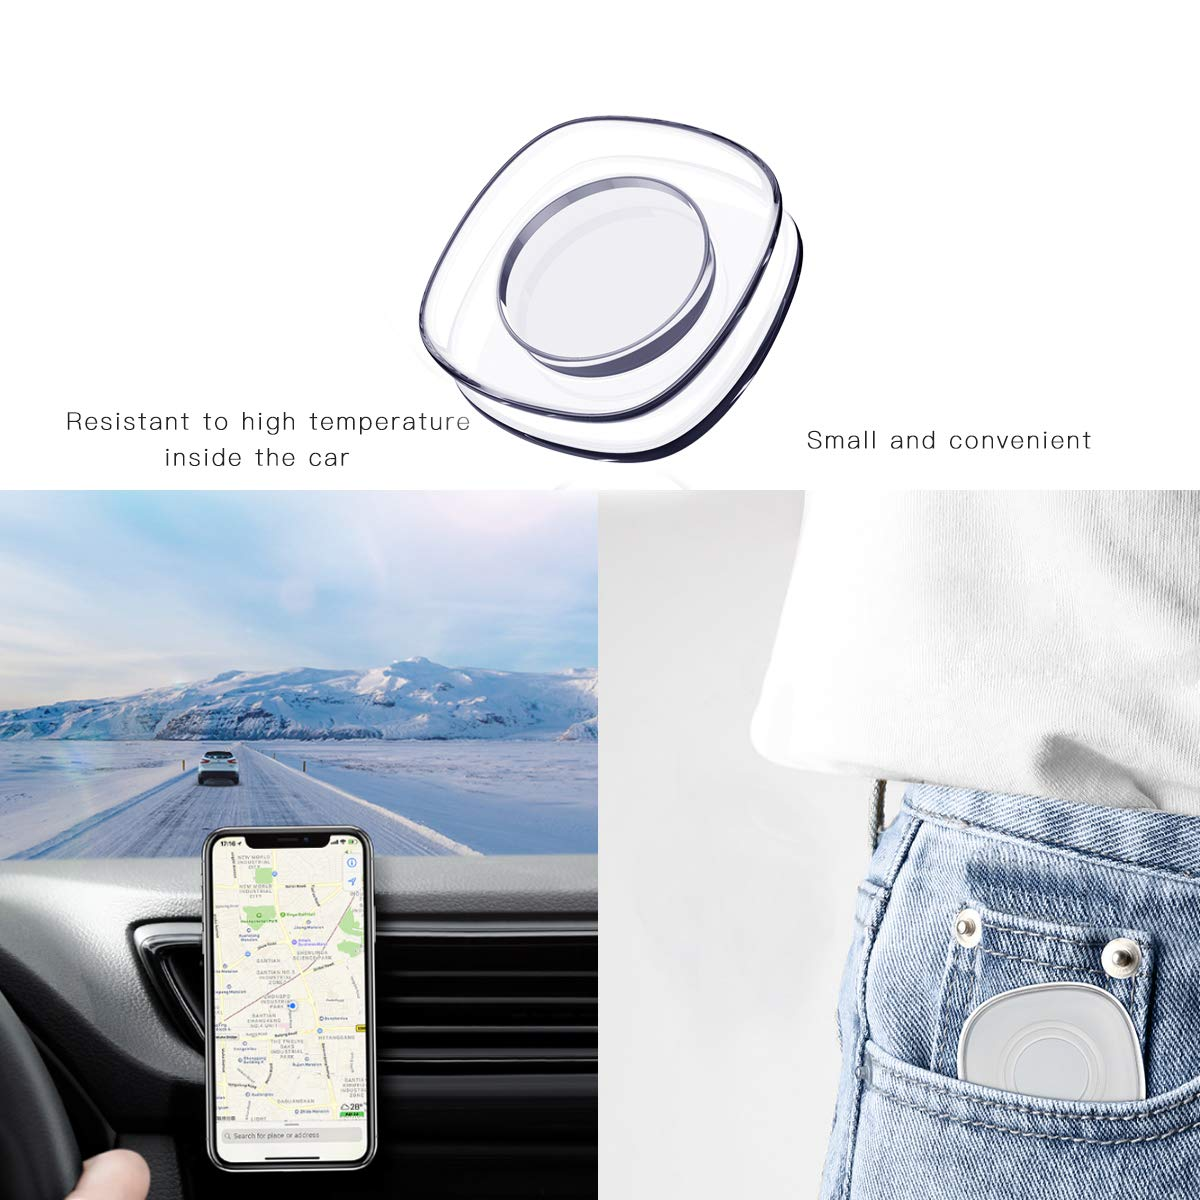 Small Equipment and Items Washable Versatile Universal Sticky car Phone Holder Square 2PC Houses Nano Gel Pad Magic Sticker Glass Office Storage for Cars